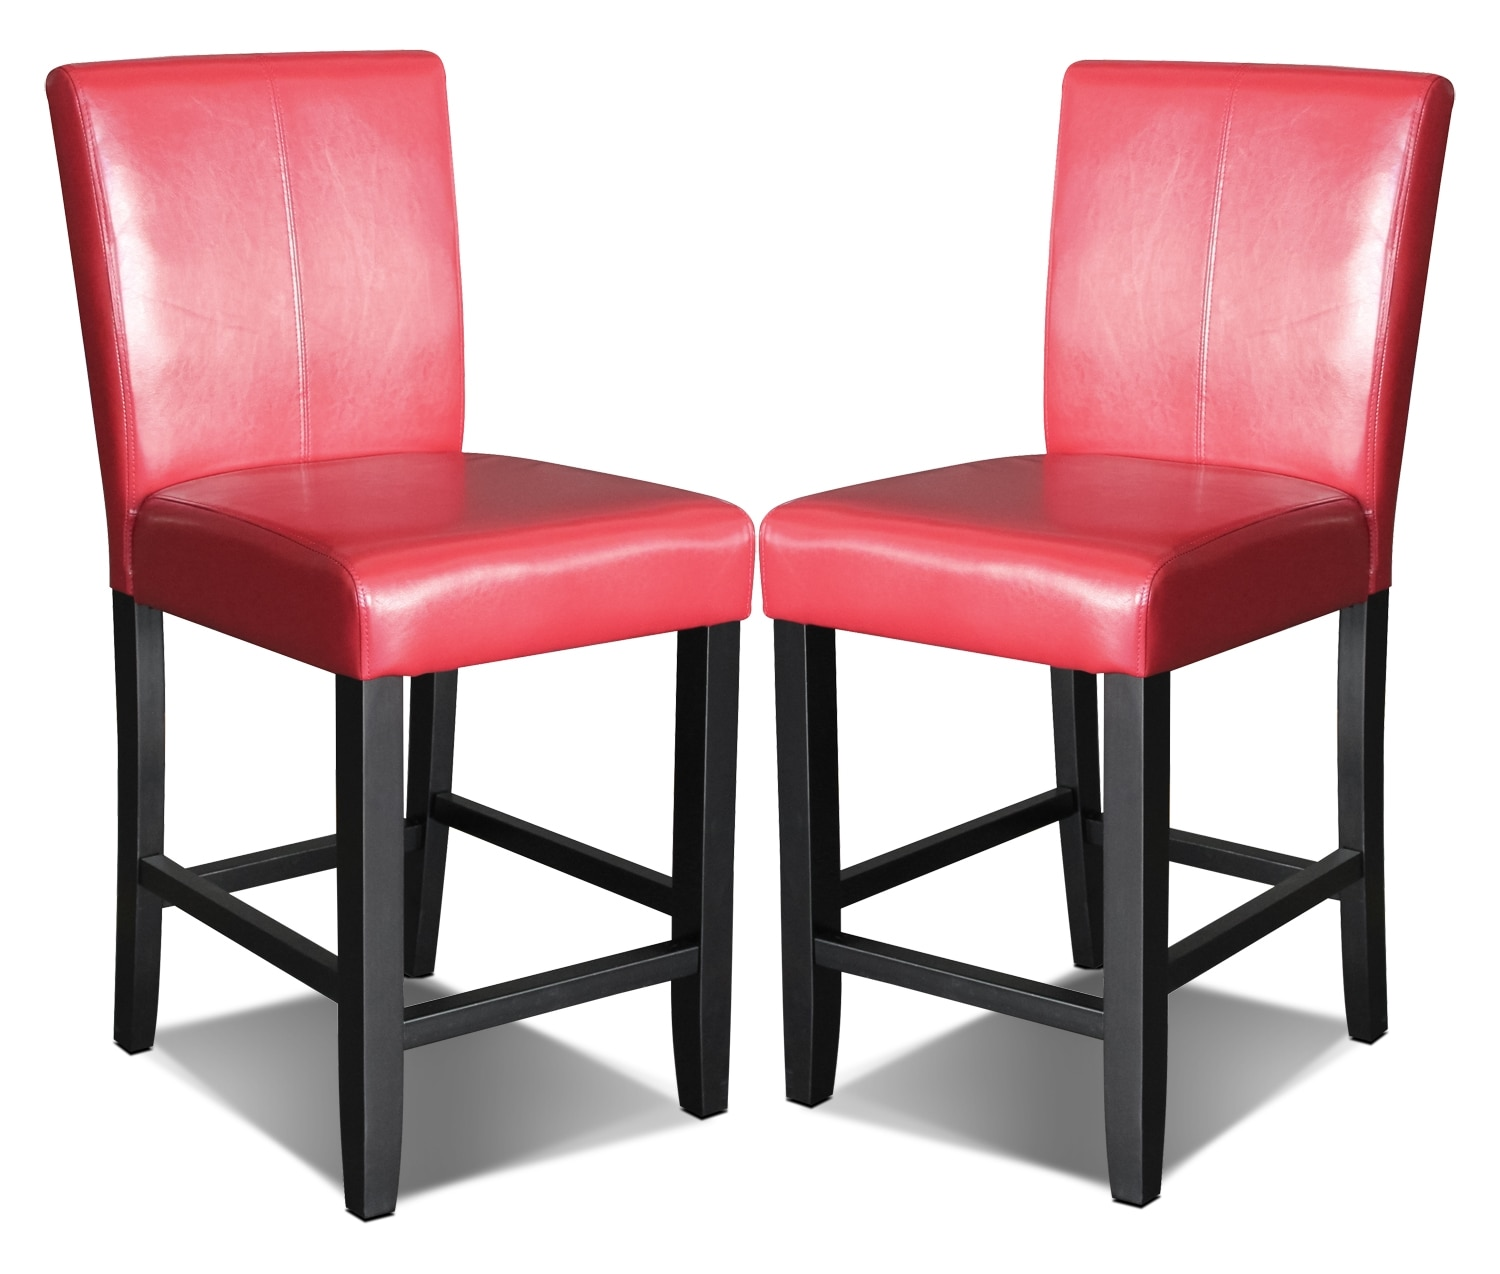 Dining Room Furniture - Kendall Red Accent Counter Height Chair, Set of 2